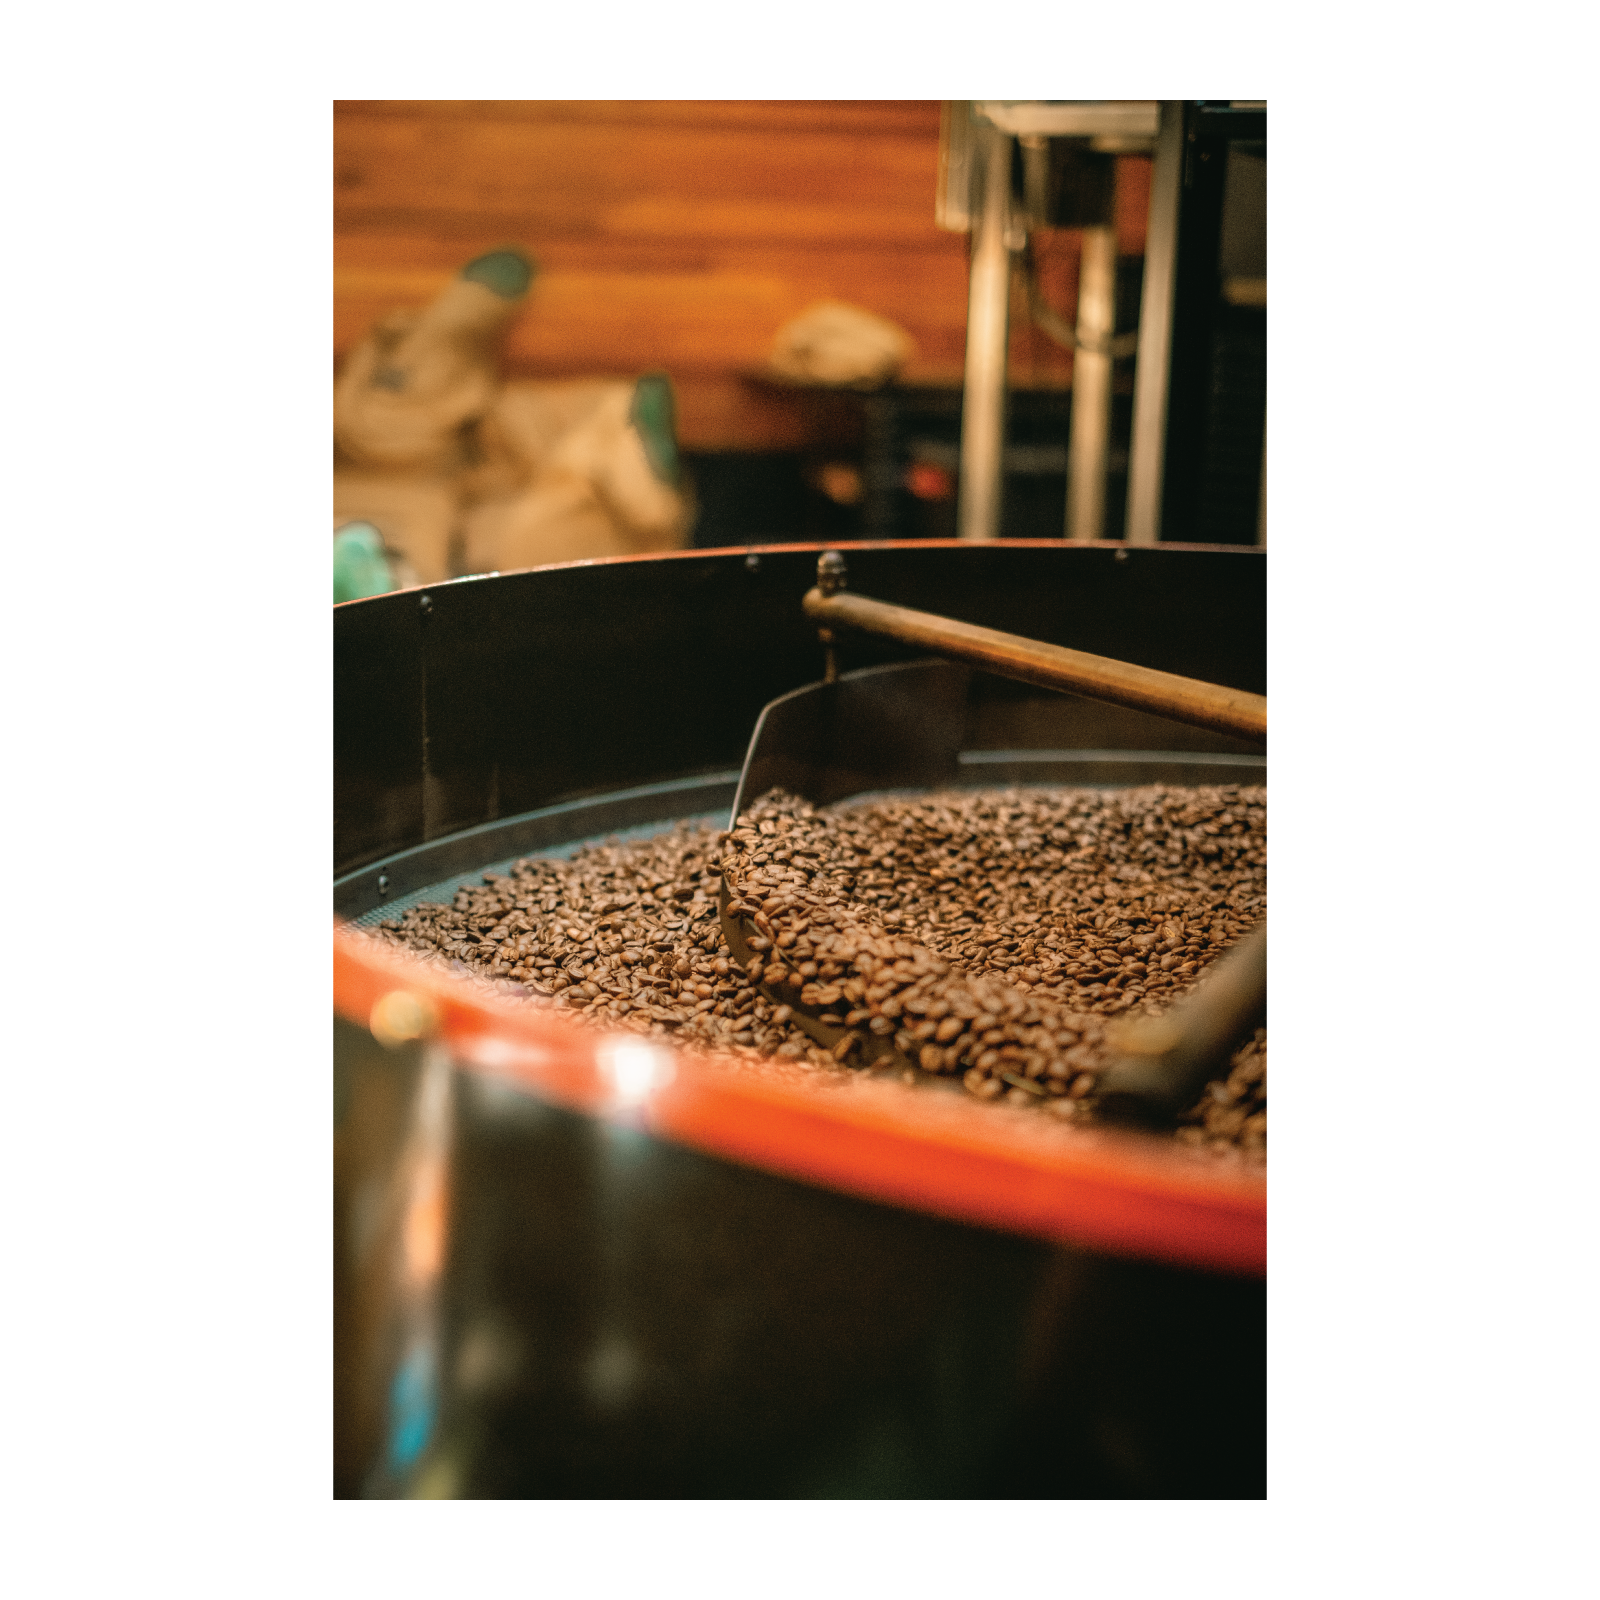 Roasted Coffee in a Cooling Tray